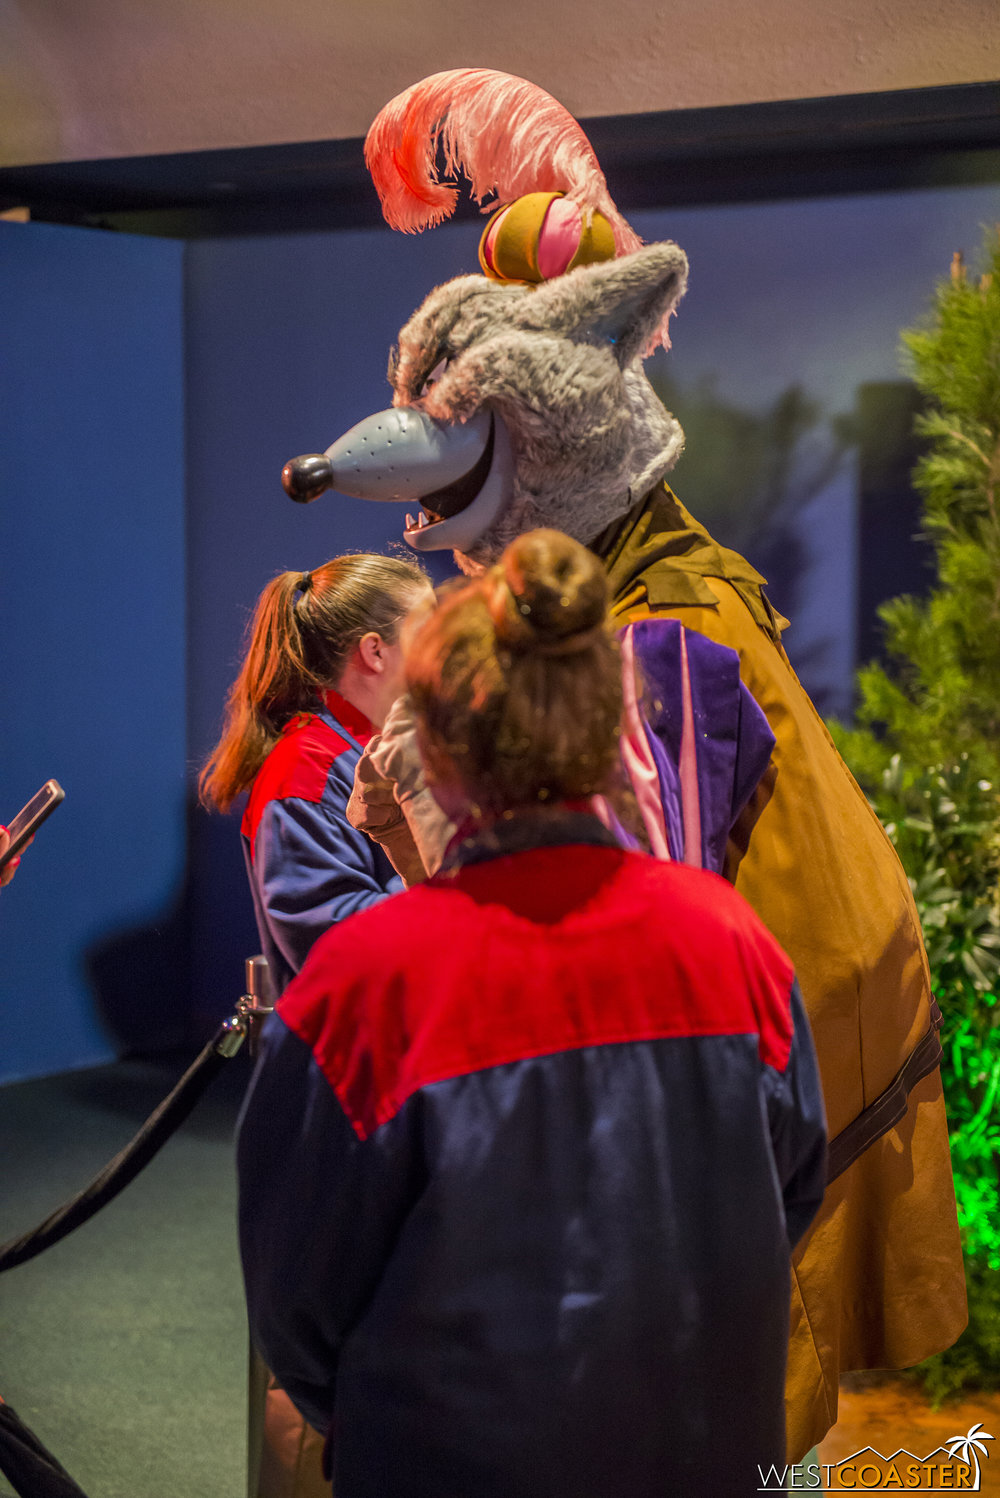 The most popular feature of this Welcome Center appeared to be the meet-and-greet with the Sheriff of Nottingham and Prince John from Disney's  Robin Hood .